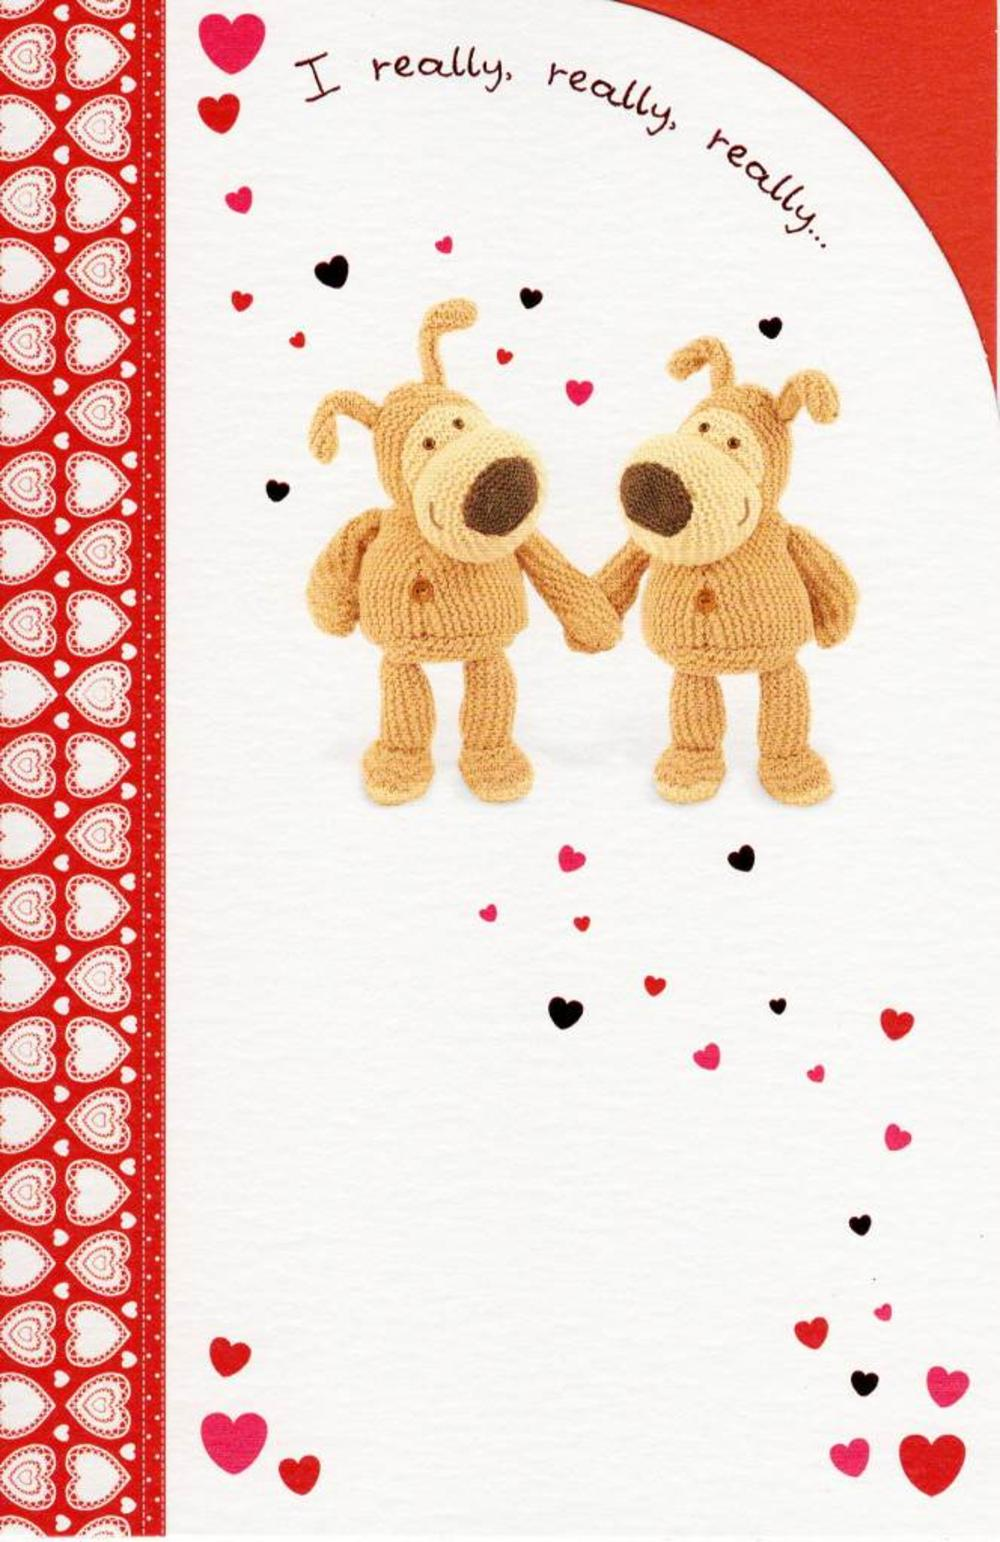 I Really Really Like You Boofle Valentine's Day Card